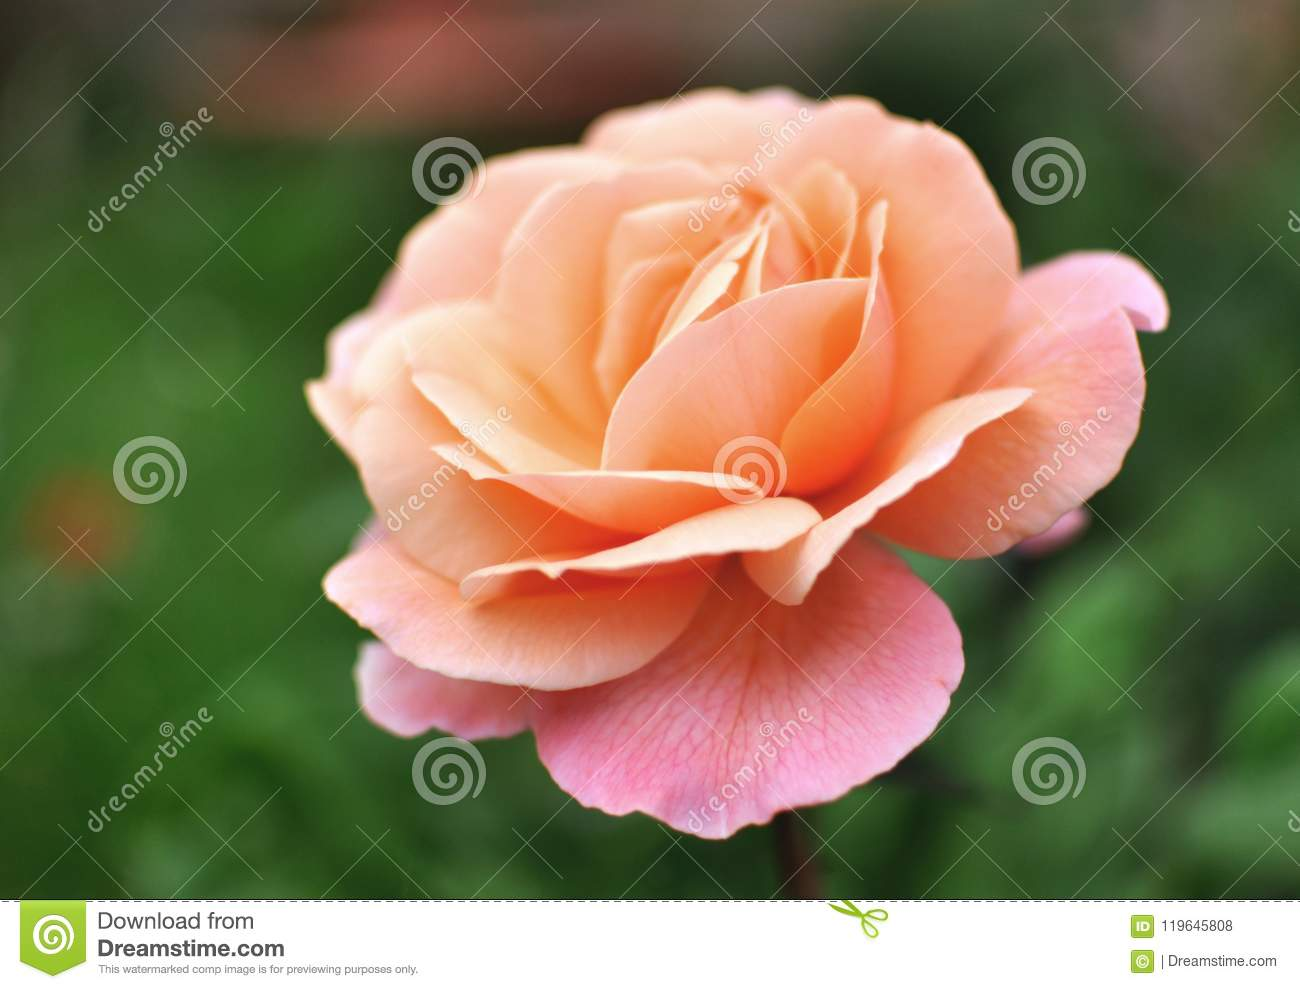 Le bel anglais de corail rose Rose, backgroung vert